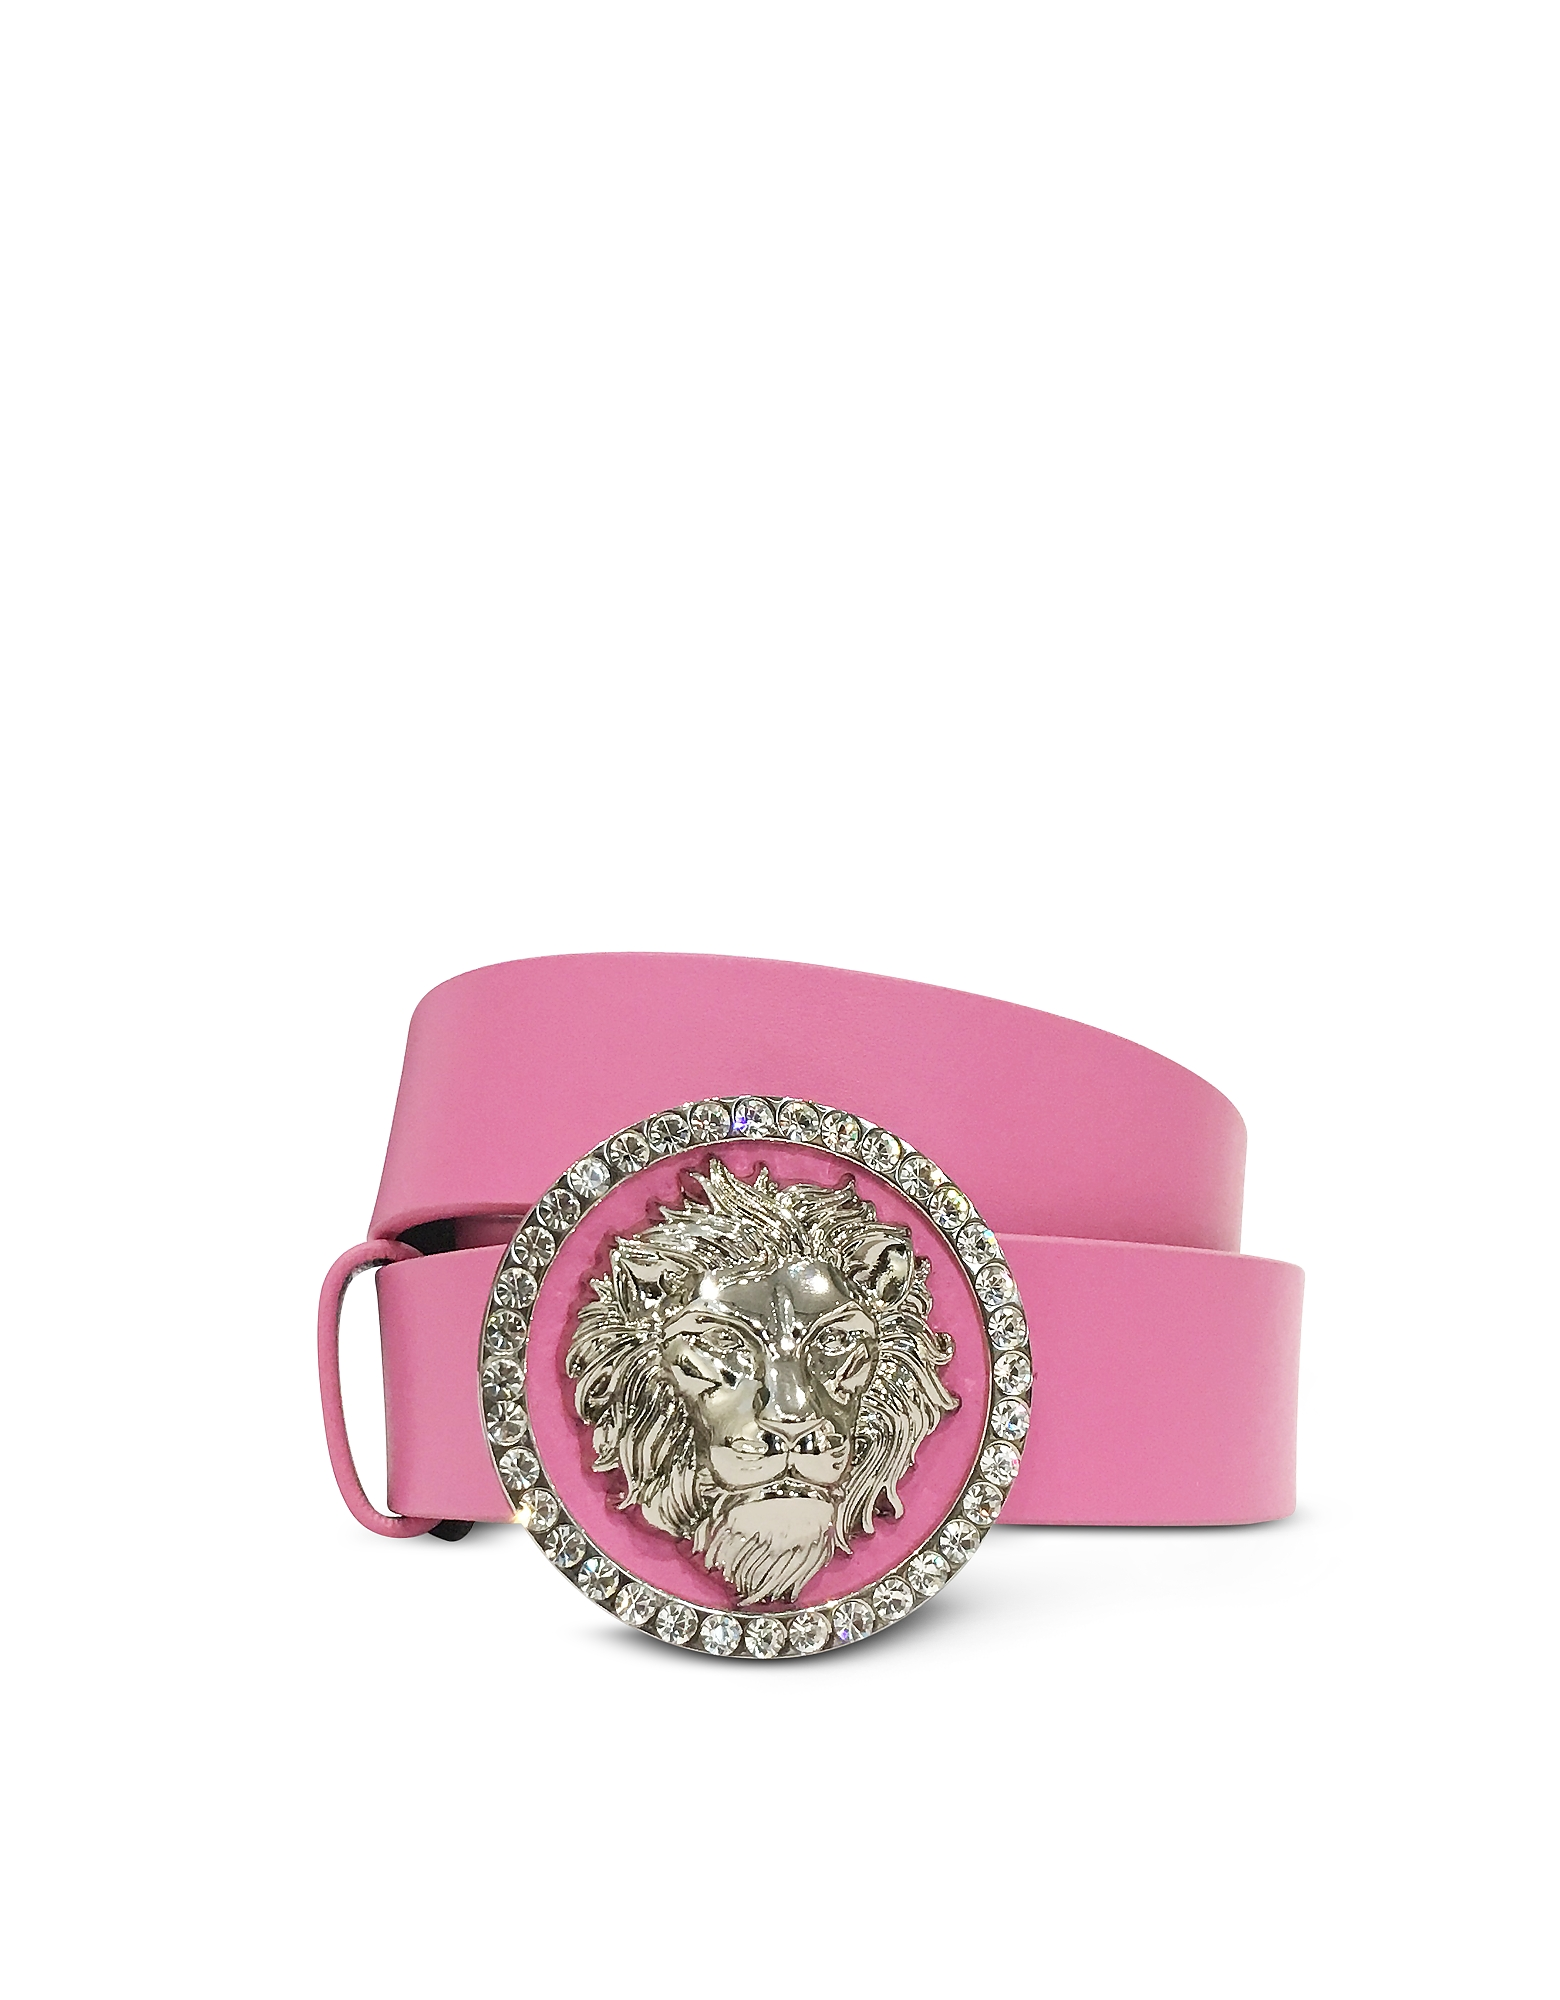 Crystal Lion Buckle Women's Belt